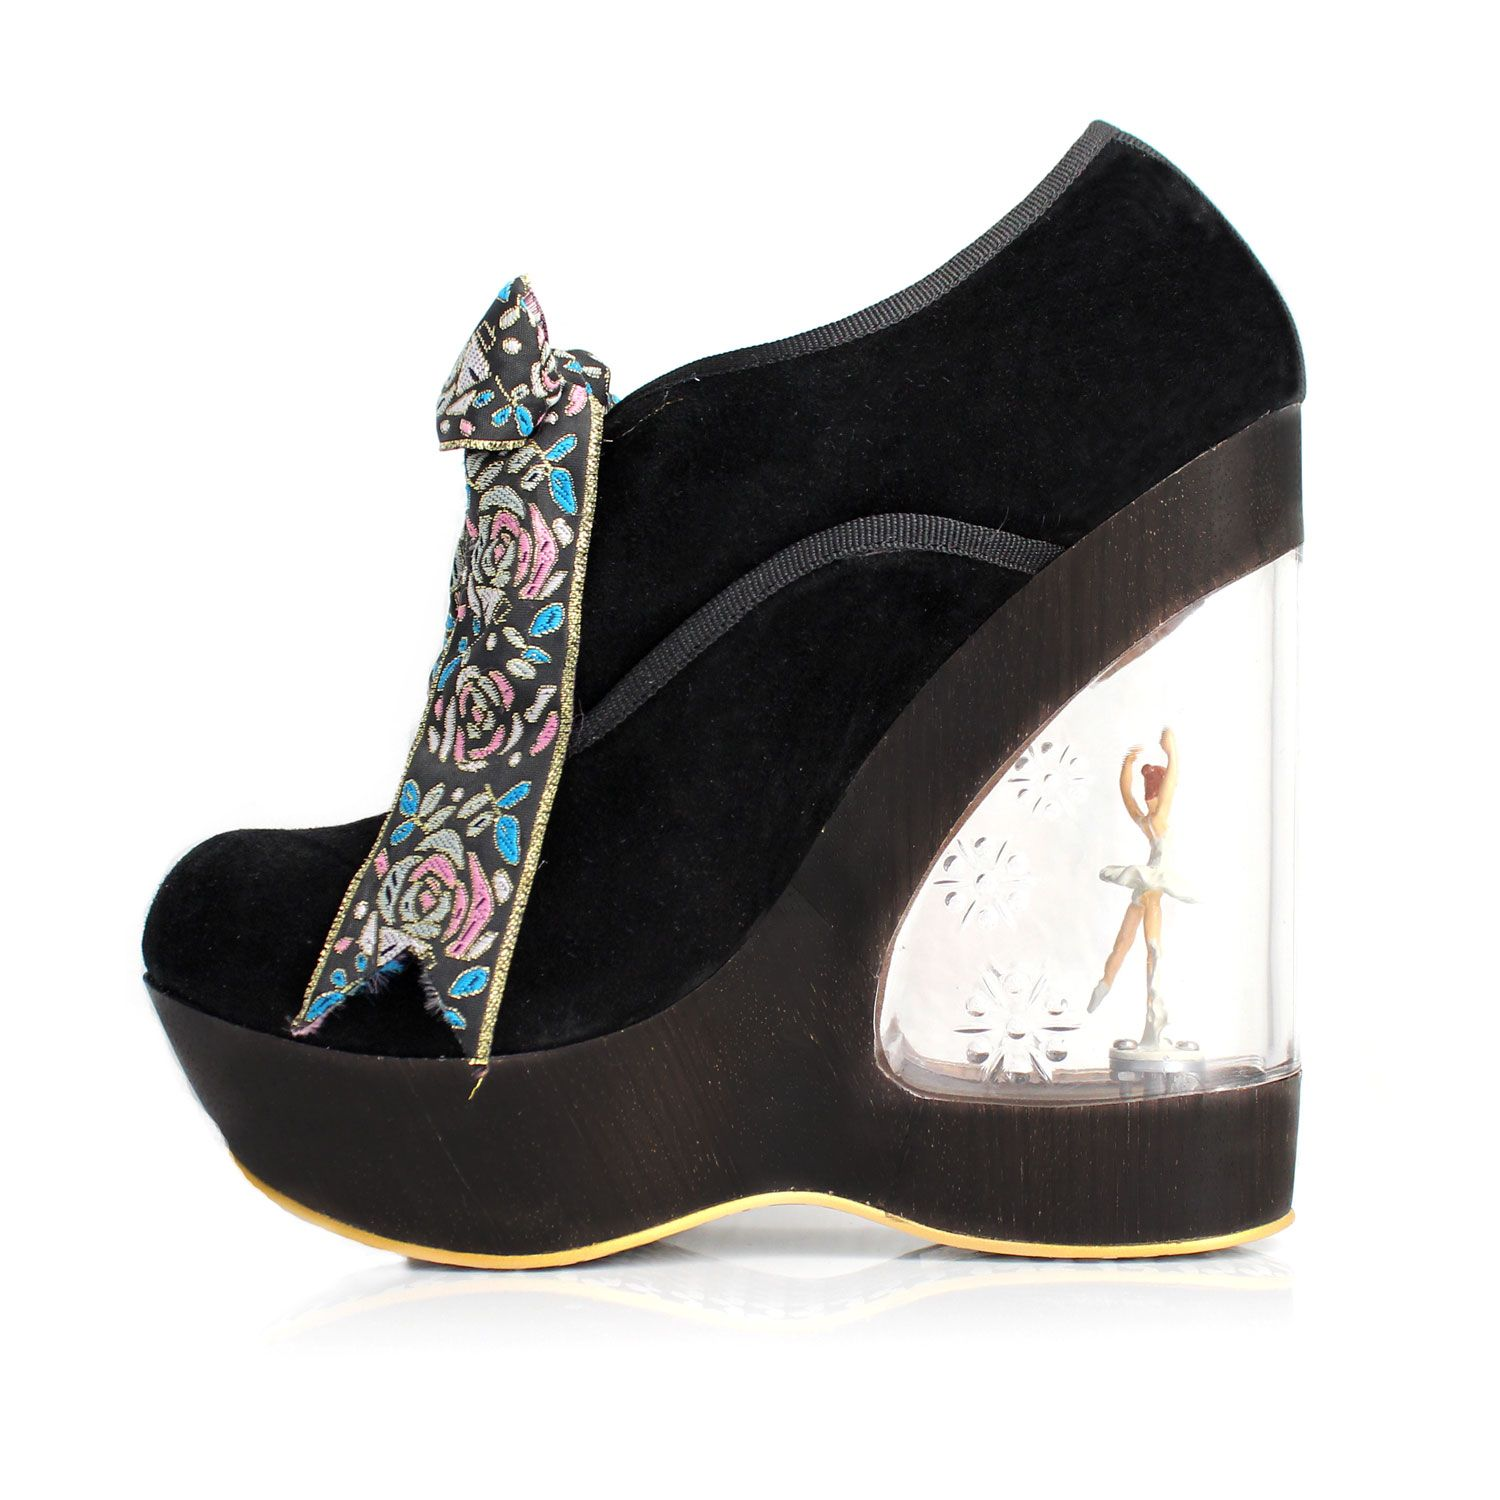 e2b5cc5825 Irregular Choice Glissade Shoe Black, Irregular Choice Womens Ballerina Heel